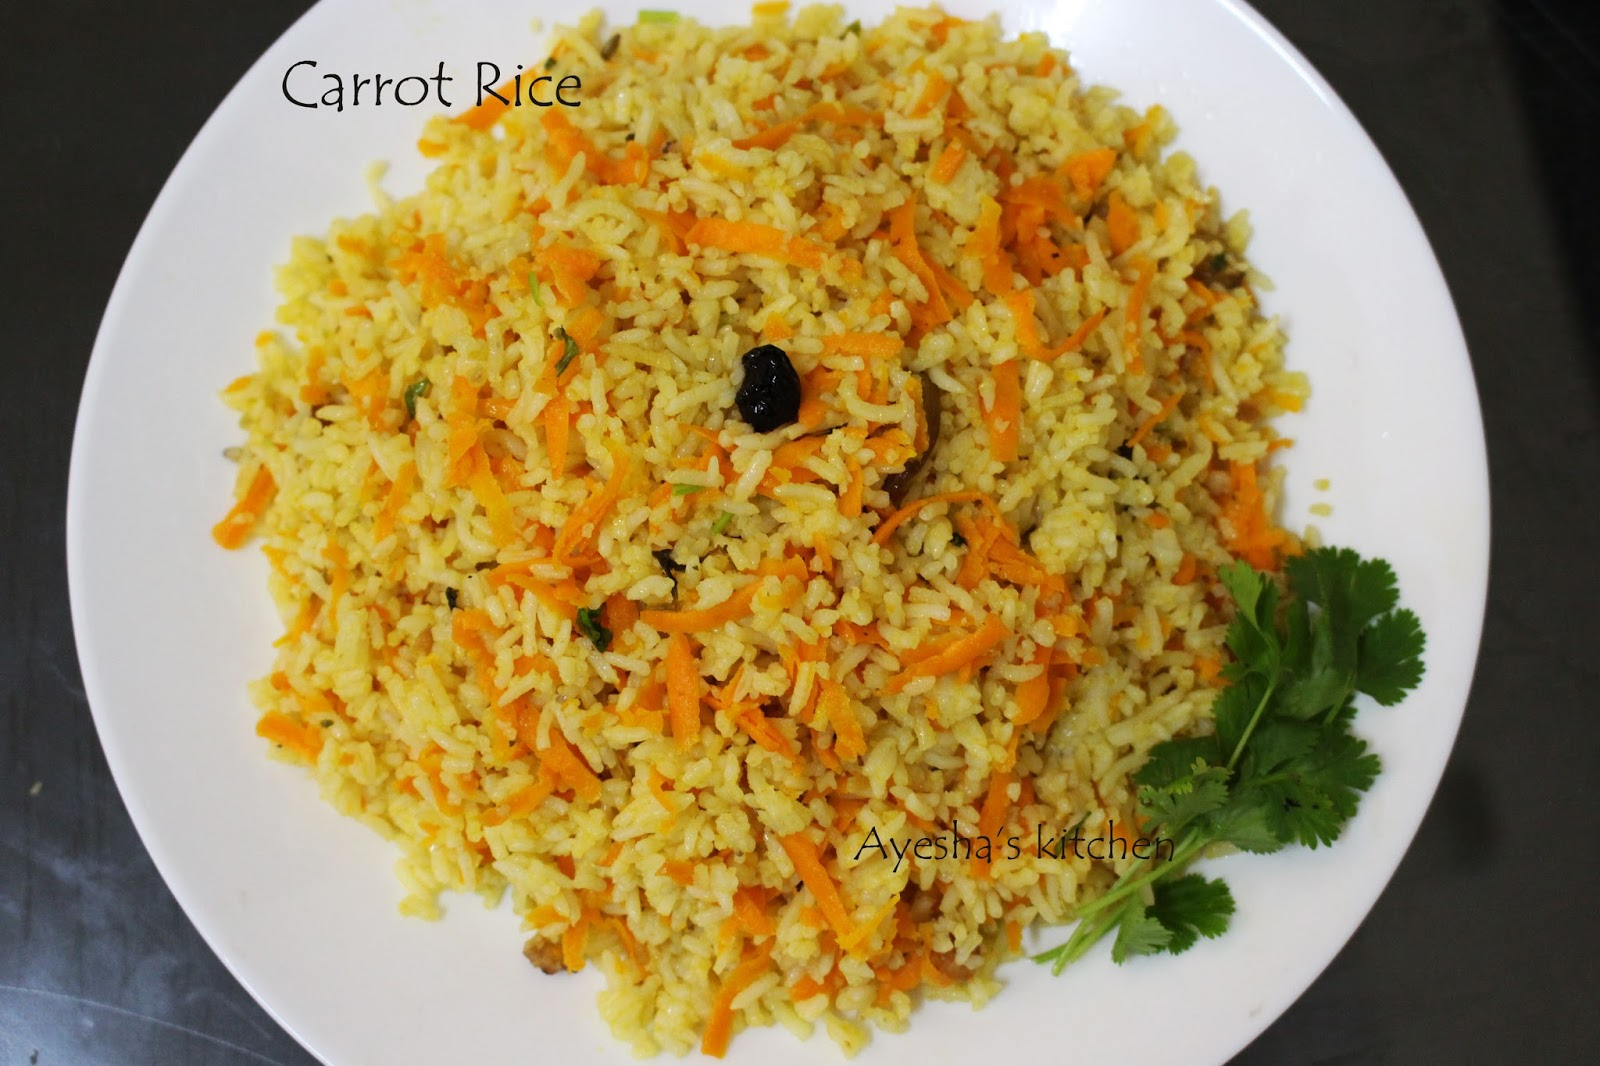 Here Is The Recipe Showing How To Make Carrot Rice Easy Lunch Box Recipes